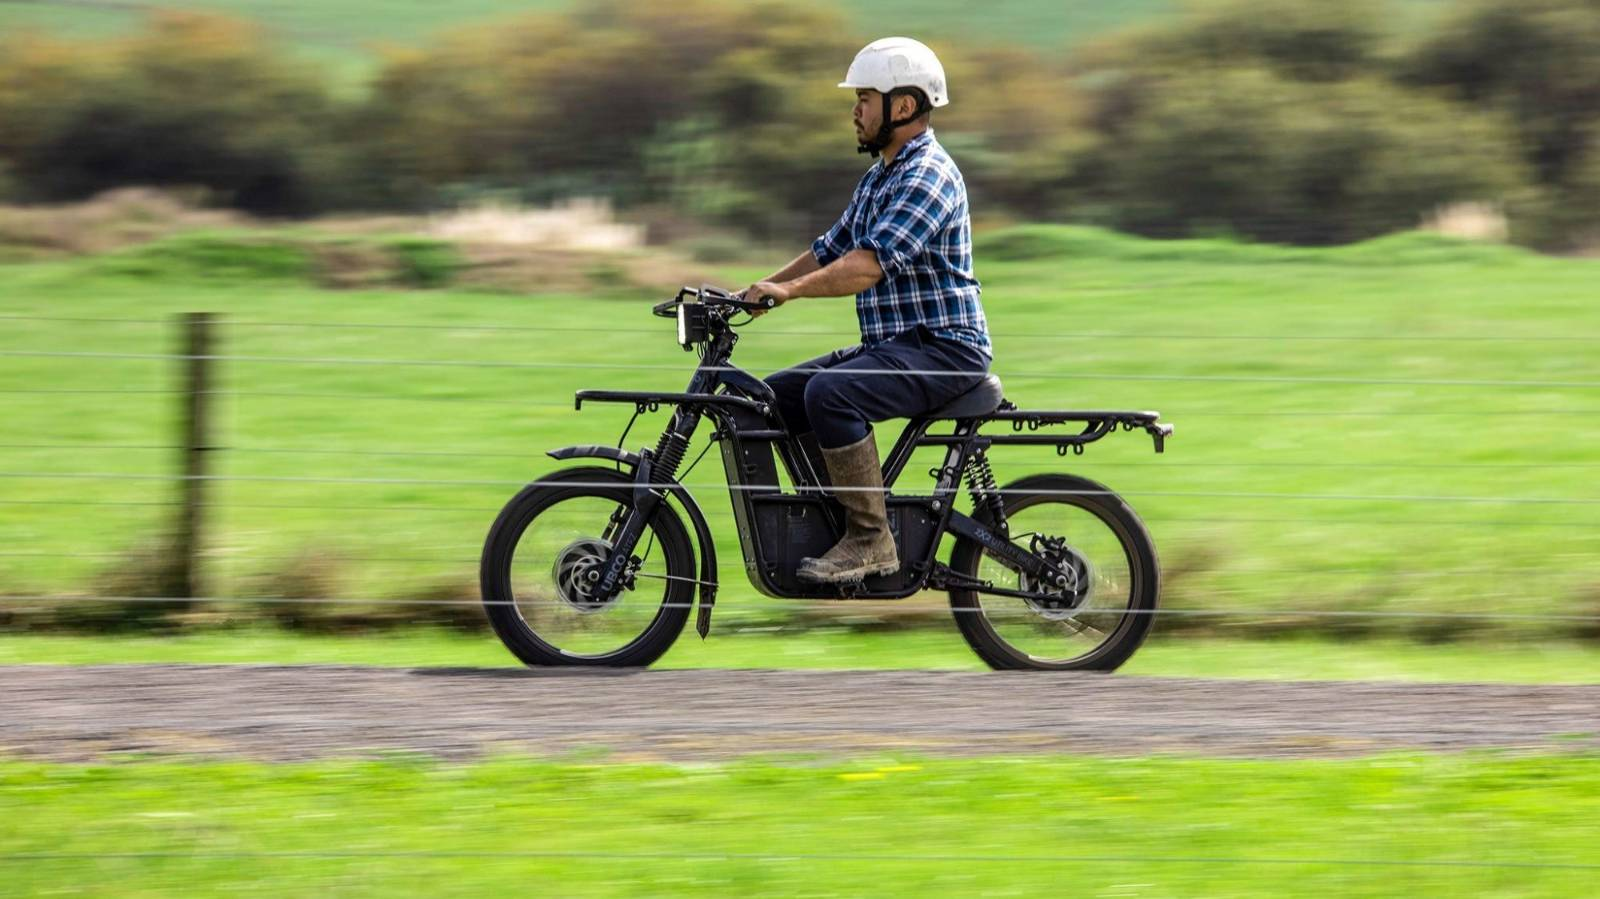 Tauranga electric motorcycle maker scores US$10m investment